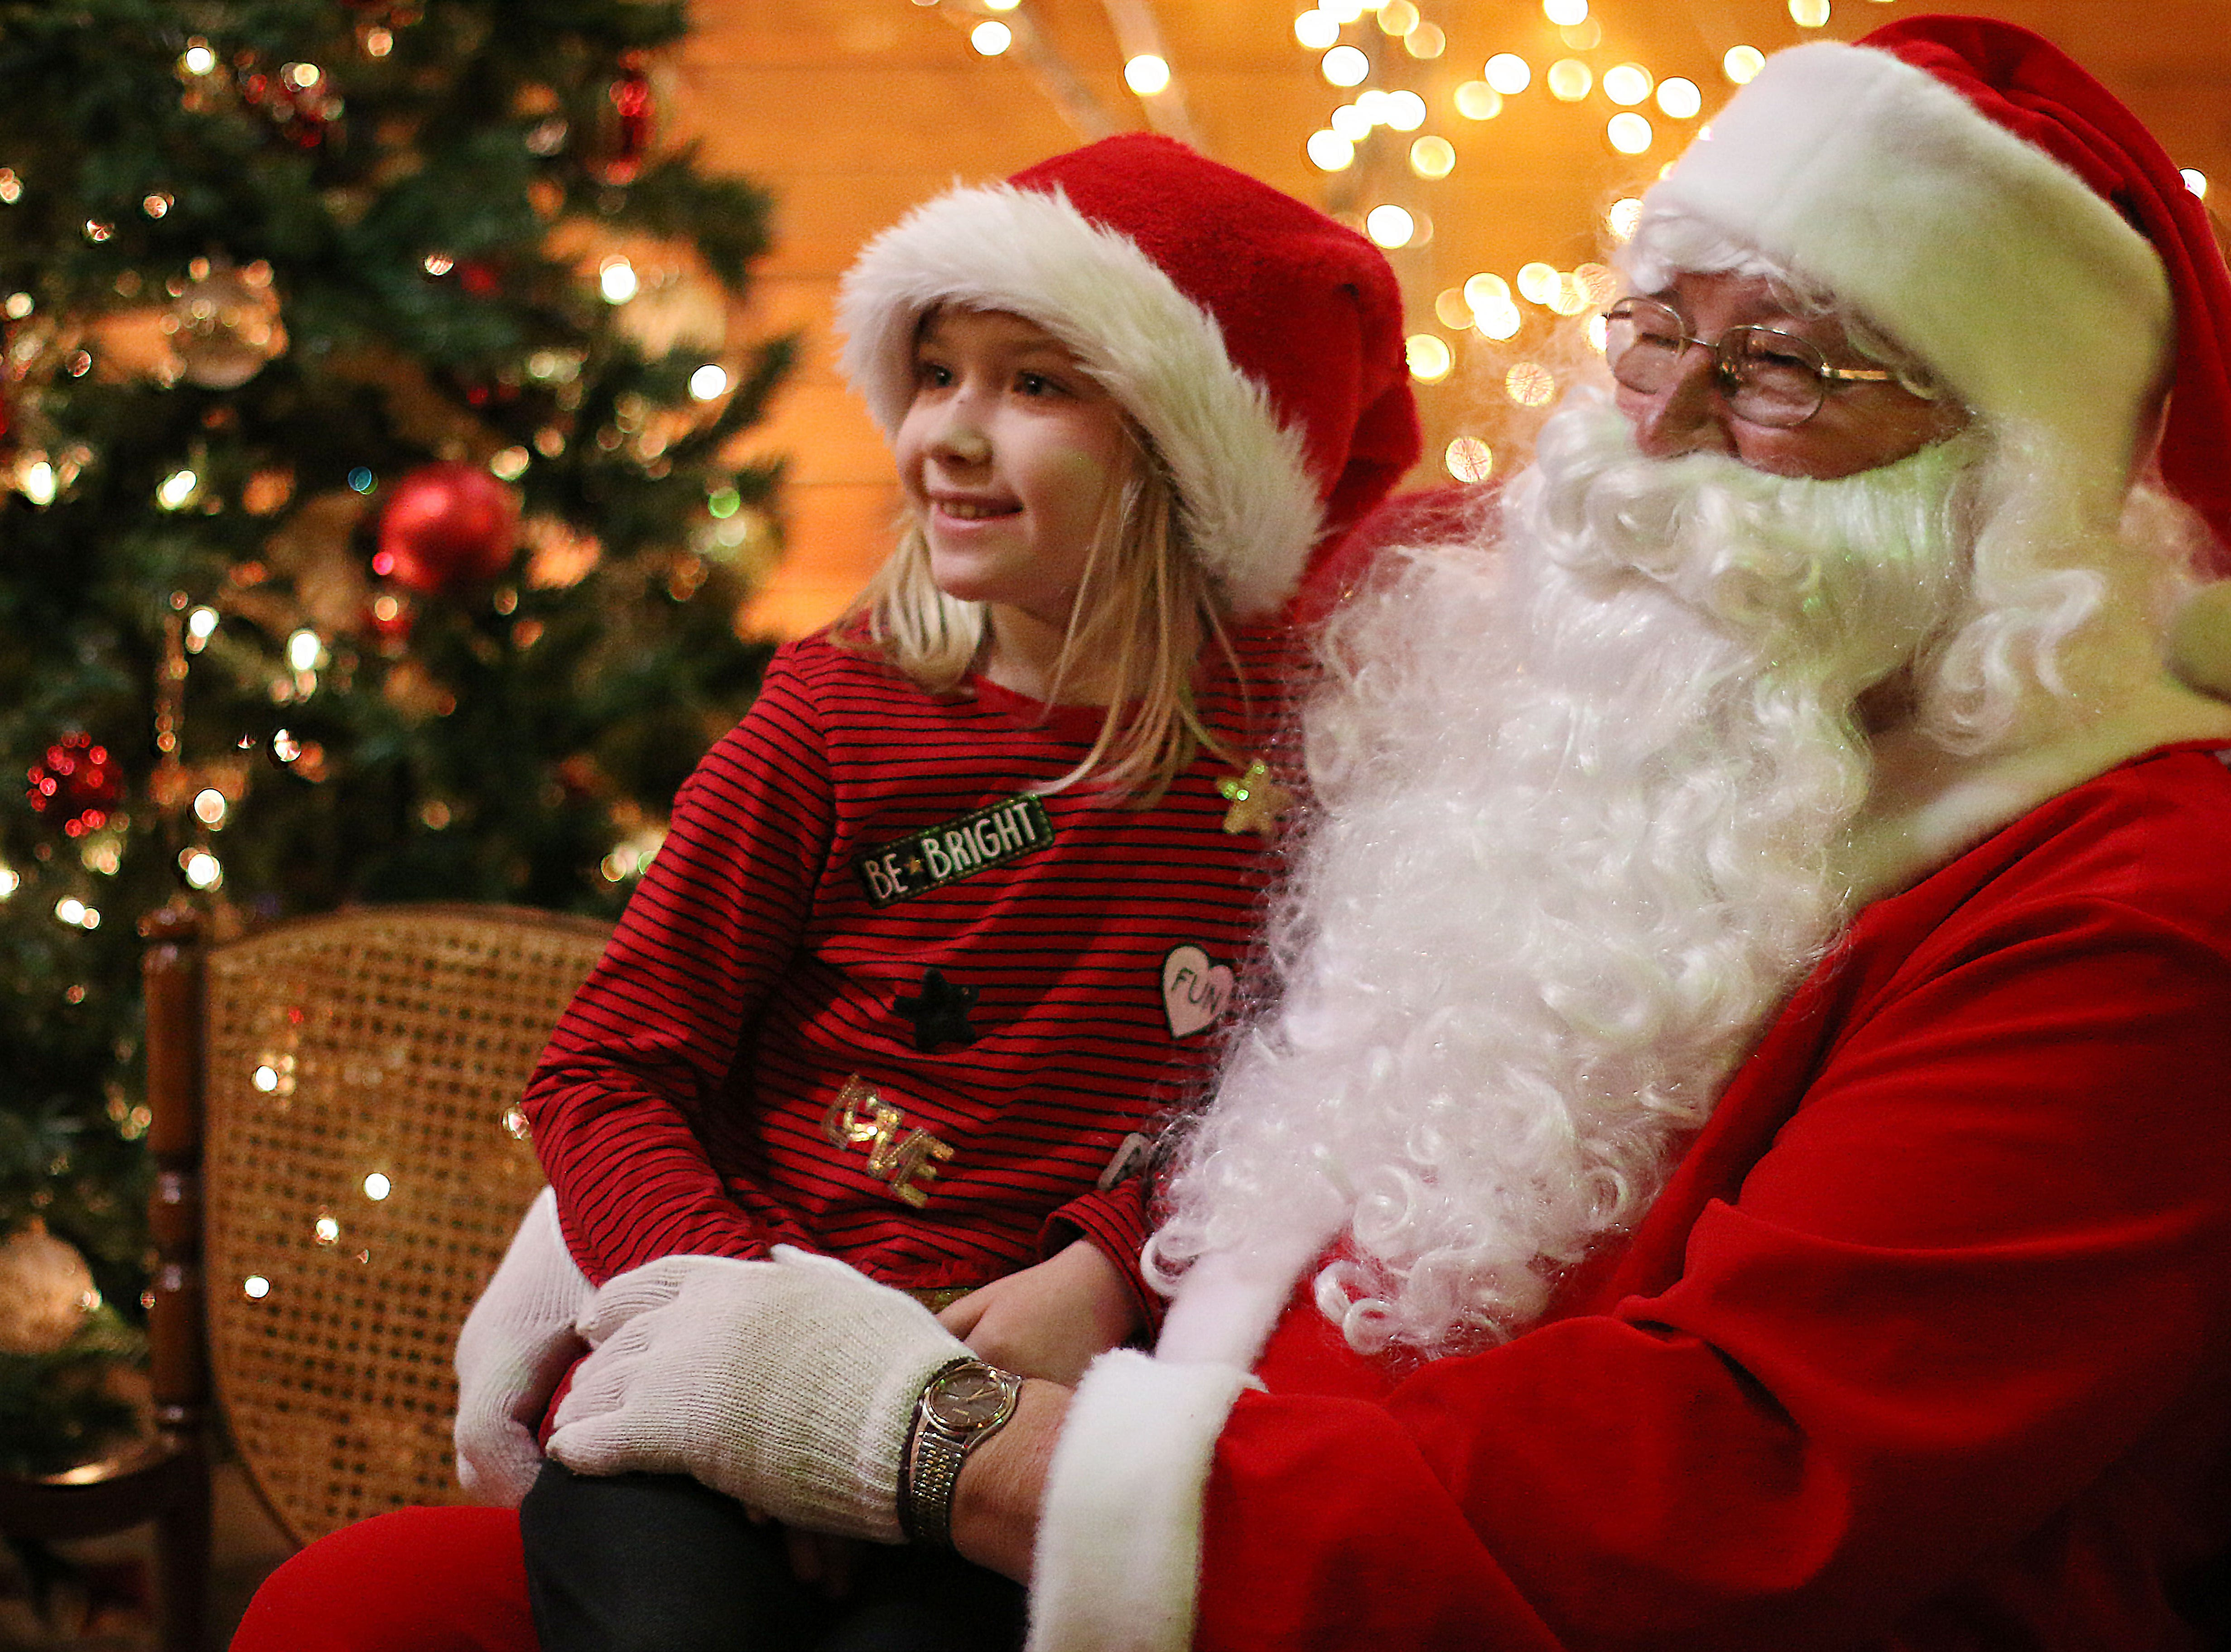 Paisyn Larzelere, 6, of Manitowoc, Wis., poses with Santa Clause at the Quarryview Center for Making Spirits Bright, Friday, November 30, 2018, in Sheboygan, Wis.